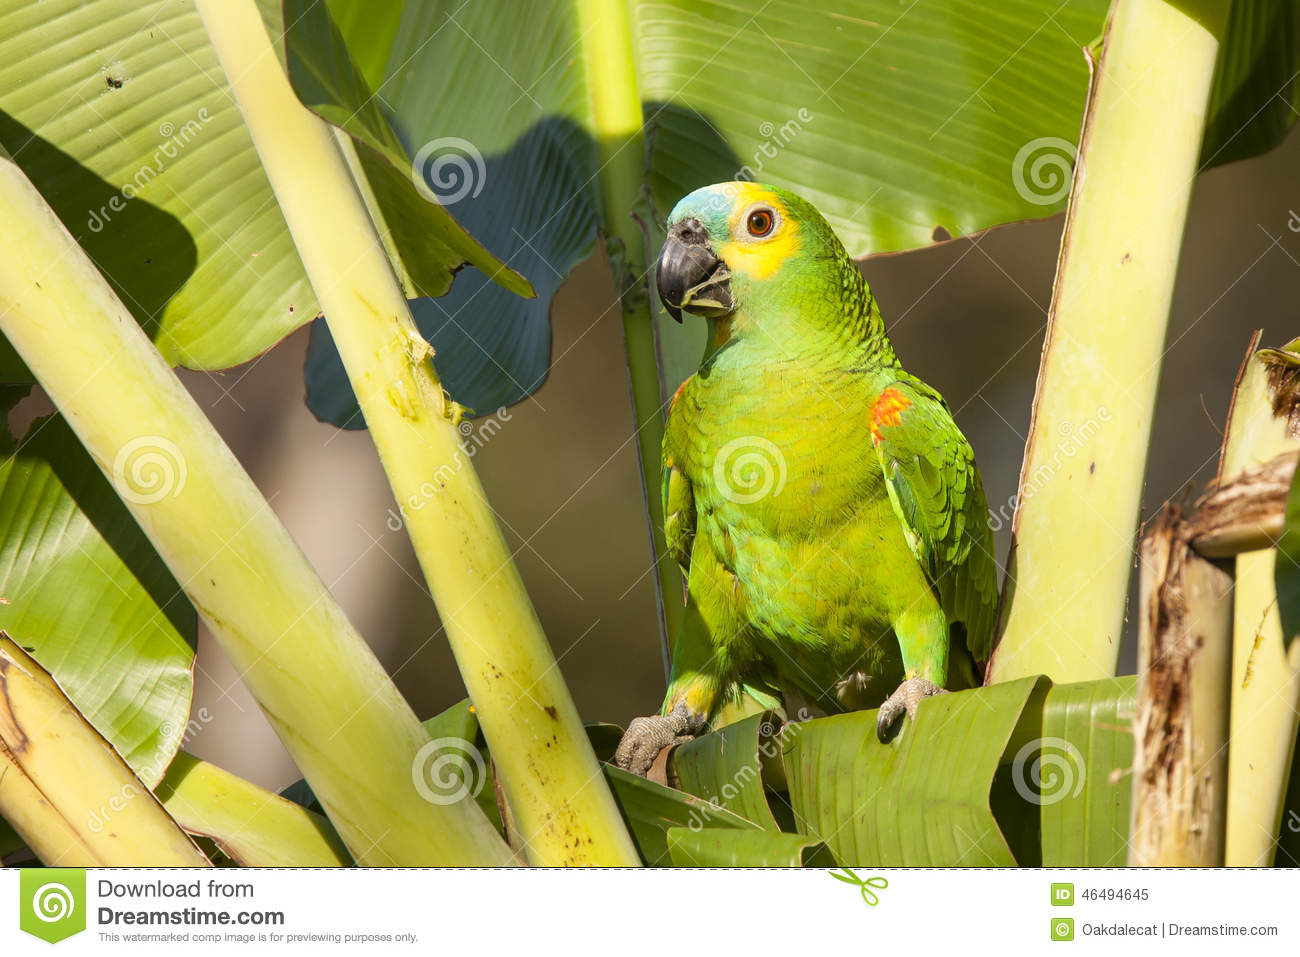 Blue-fronted Parrot clipart #9, Download drawings